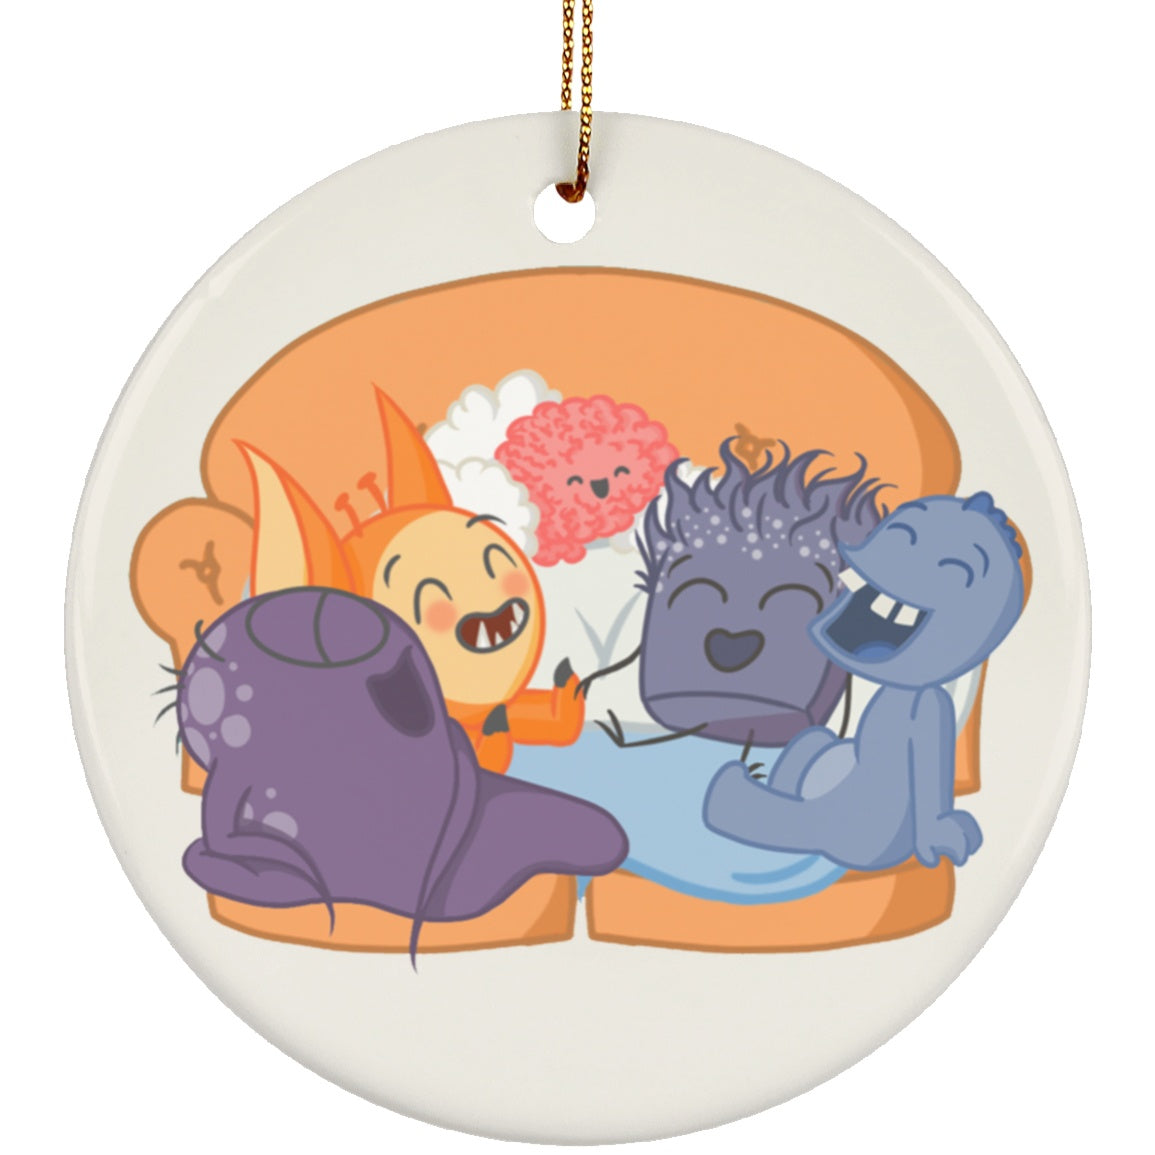 Chargimals Laughing On Couch Circle Ornament - The Unchargeables